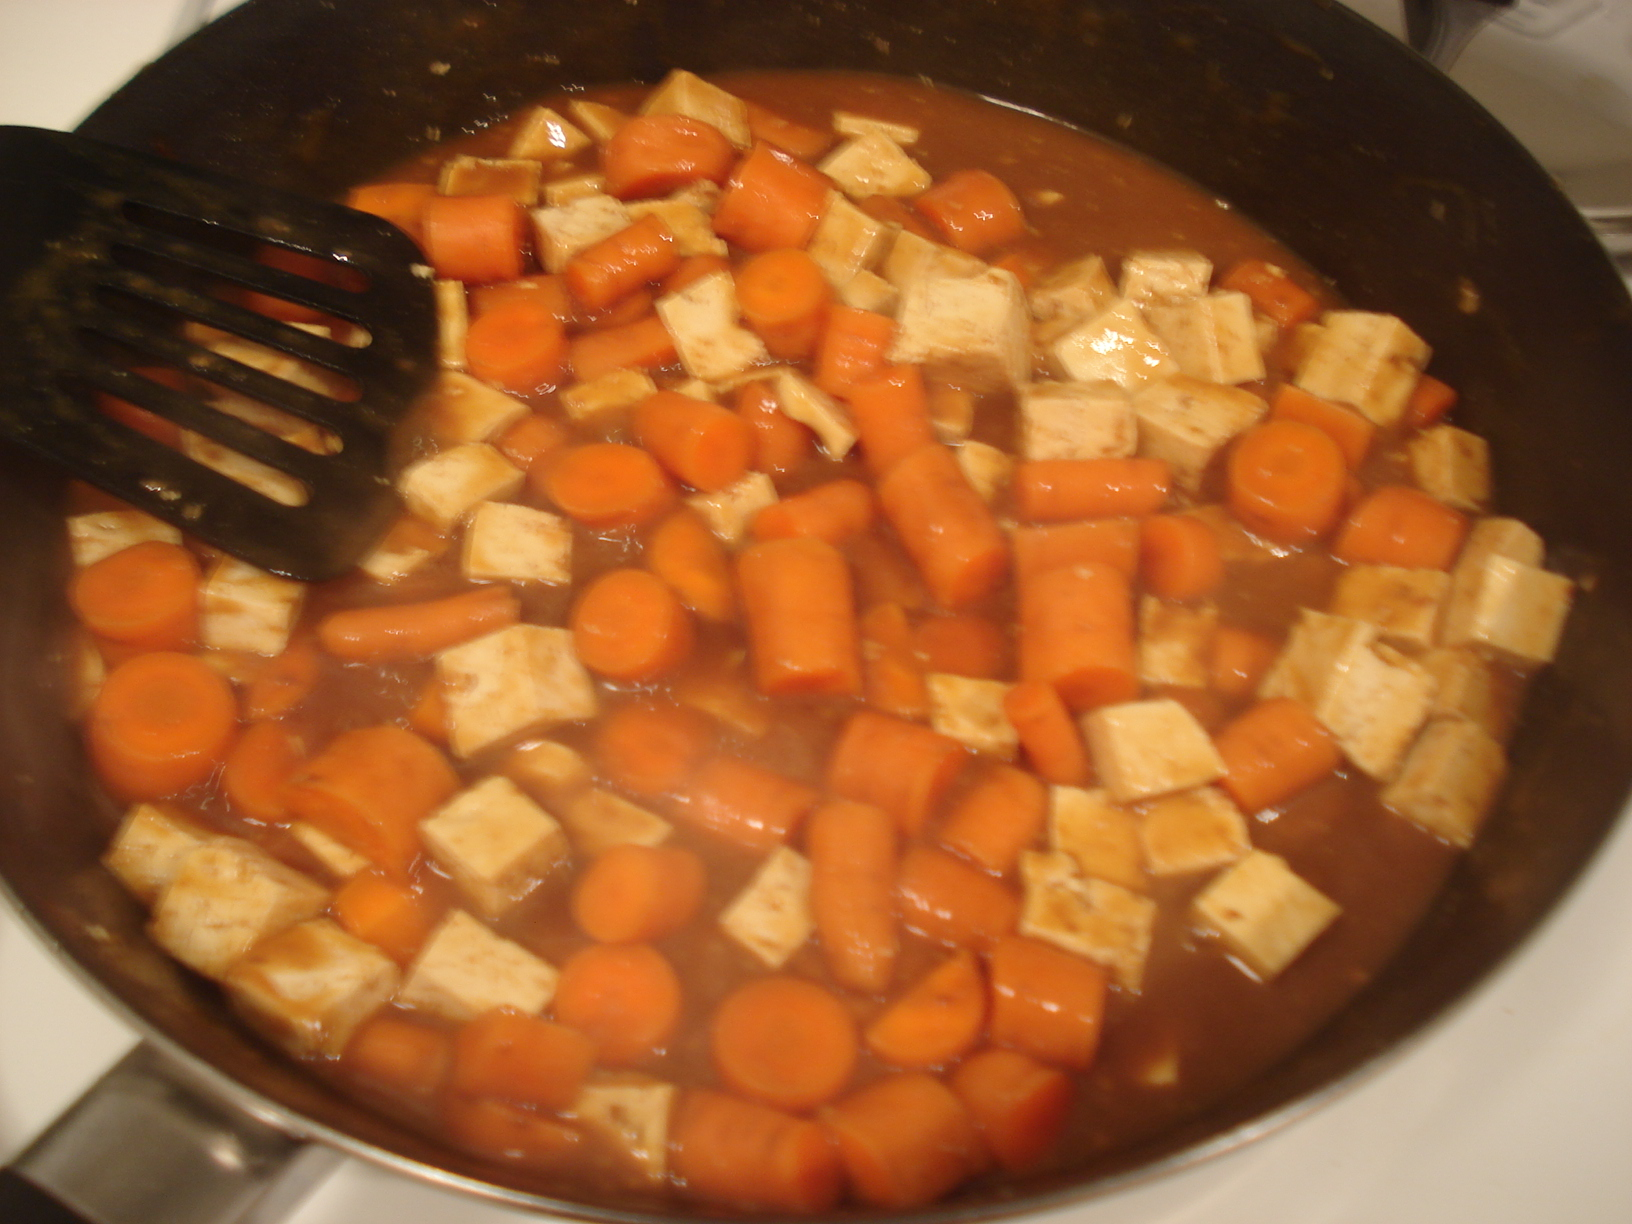 Cooking Vermont curry in a pot